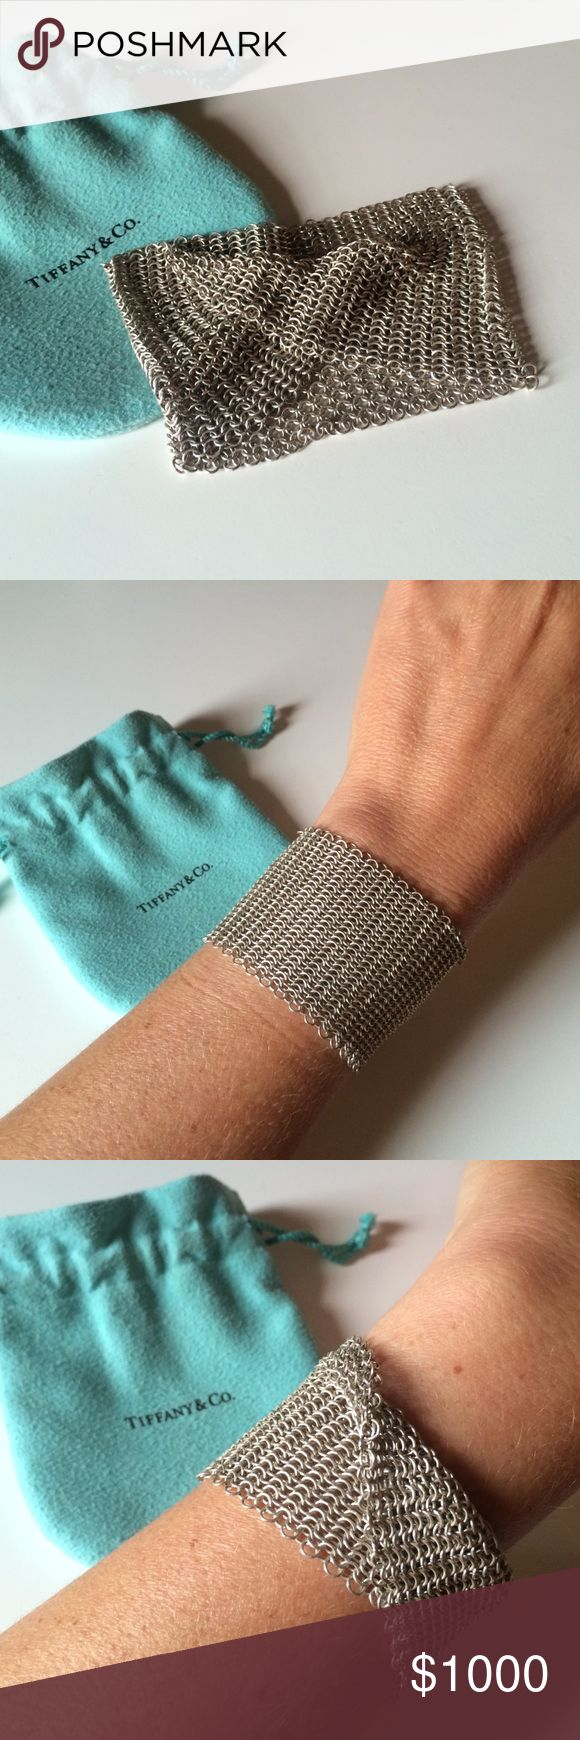 Tiffany & Co. Elsa Peretti Mesh Wide Bracelet 100% sterling silver, mesh bracelet... I received this as a gift and never wear it. It's too beautiful to not be seen! Could use a professional polish to shine its best! (Not eligible for bundles, thank you) Tiffany & Co. Jewelry Bracelets